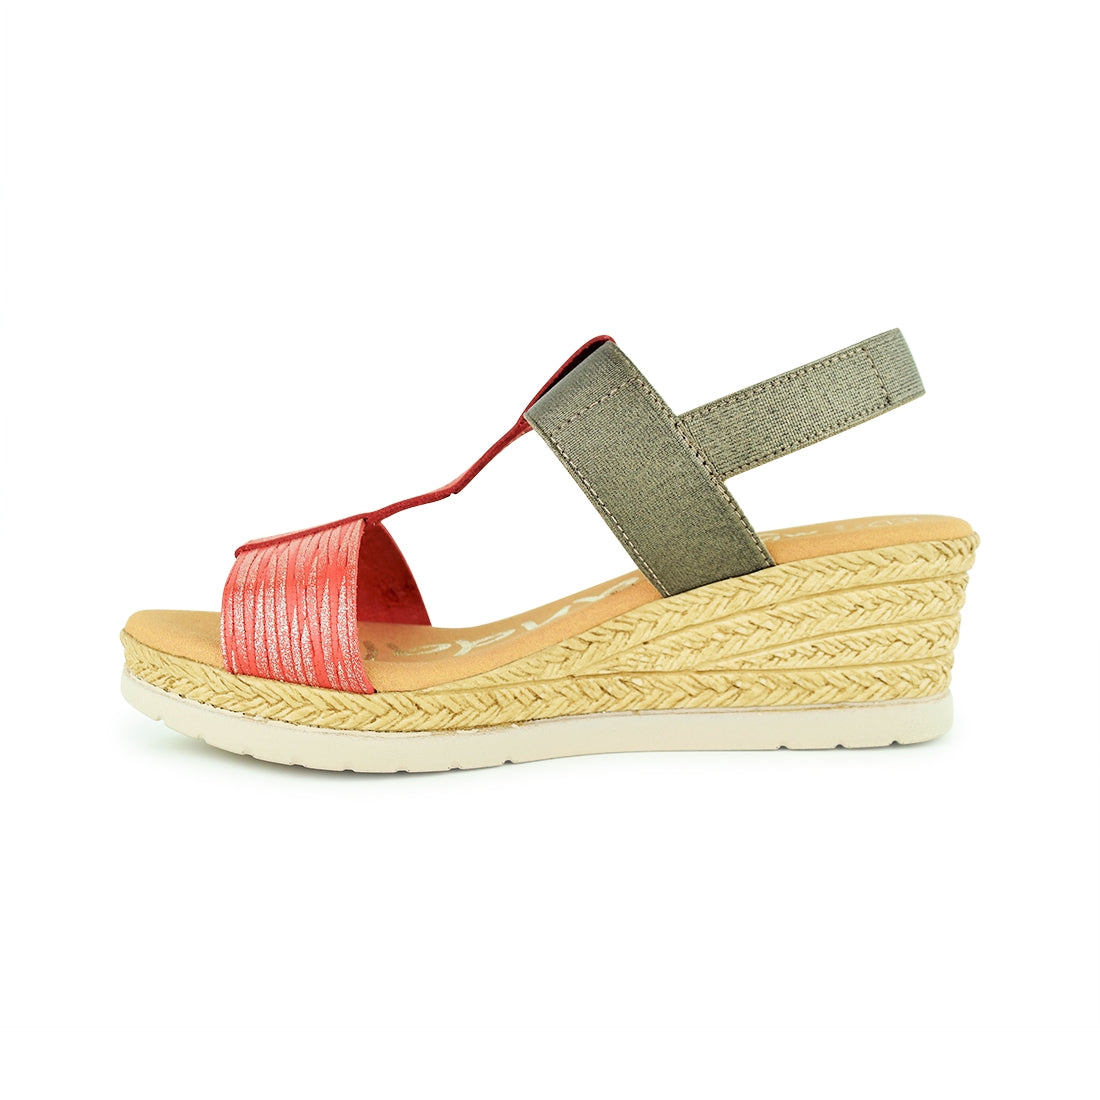 KEPA - Oh My Sandals Sandal Red Multi